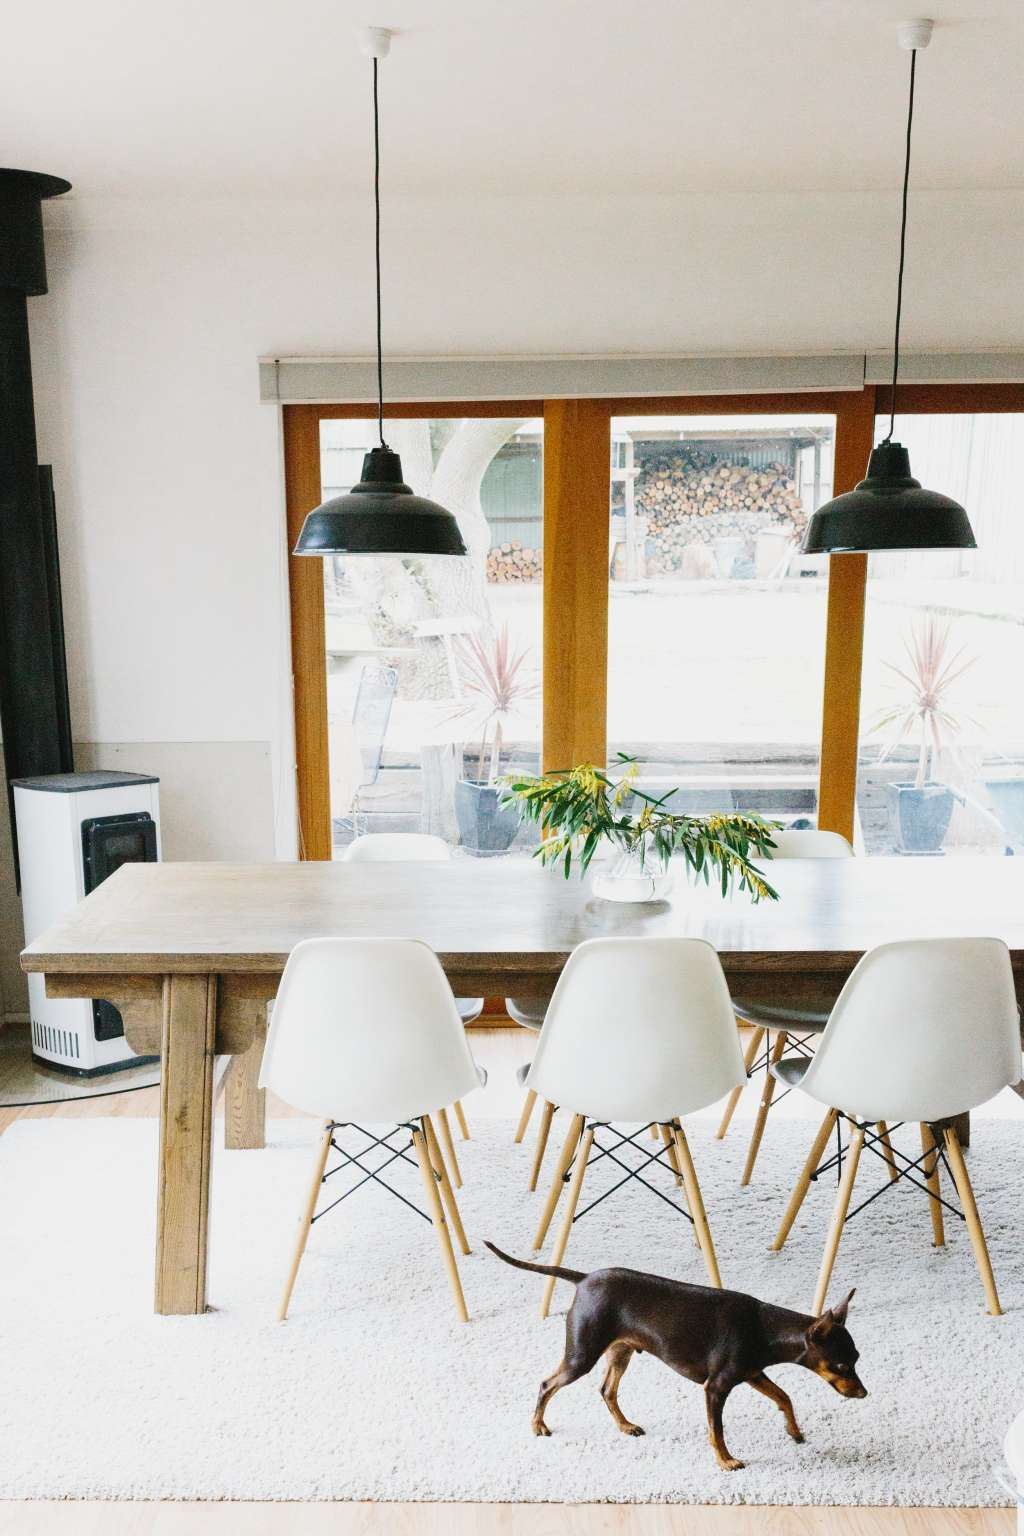 Create More Visual Harmony in Your Home